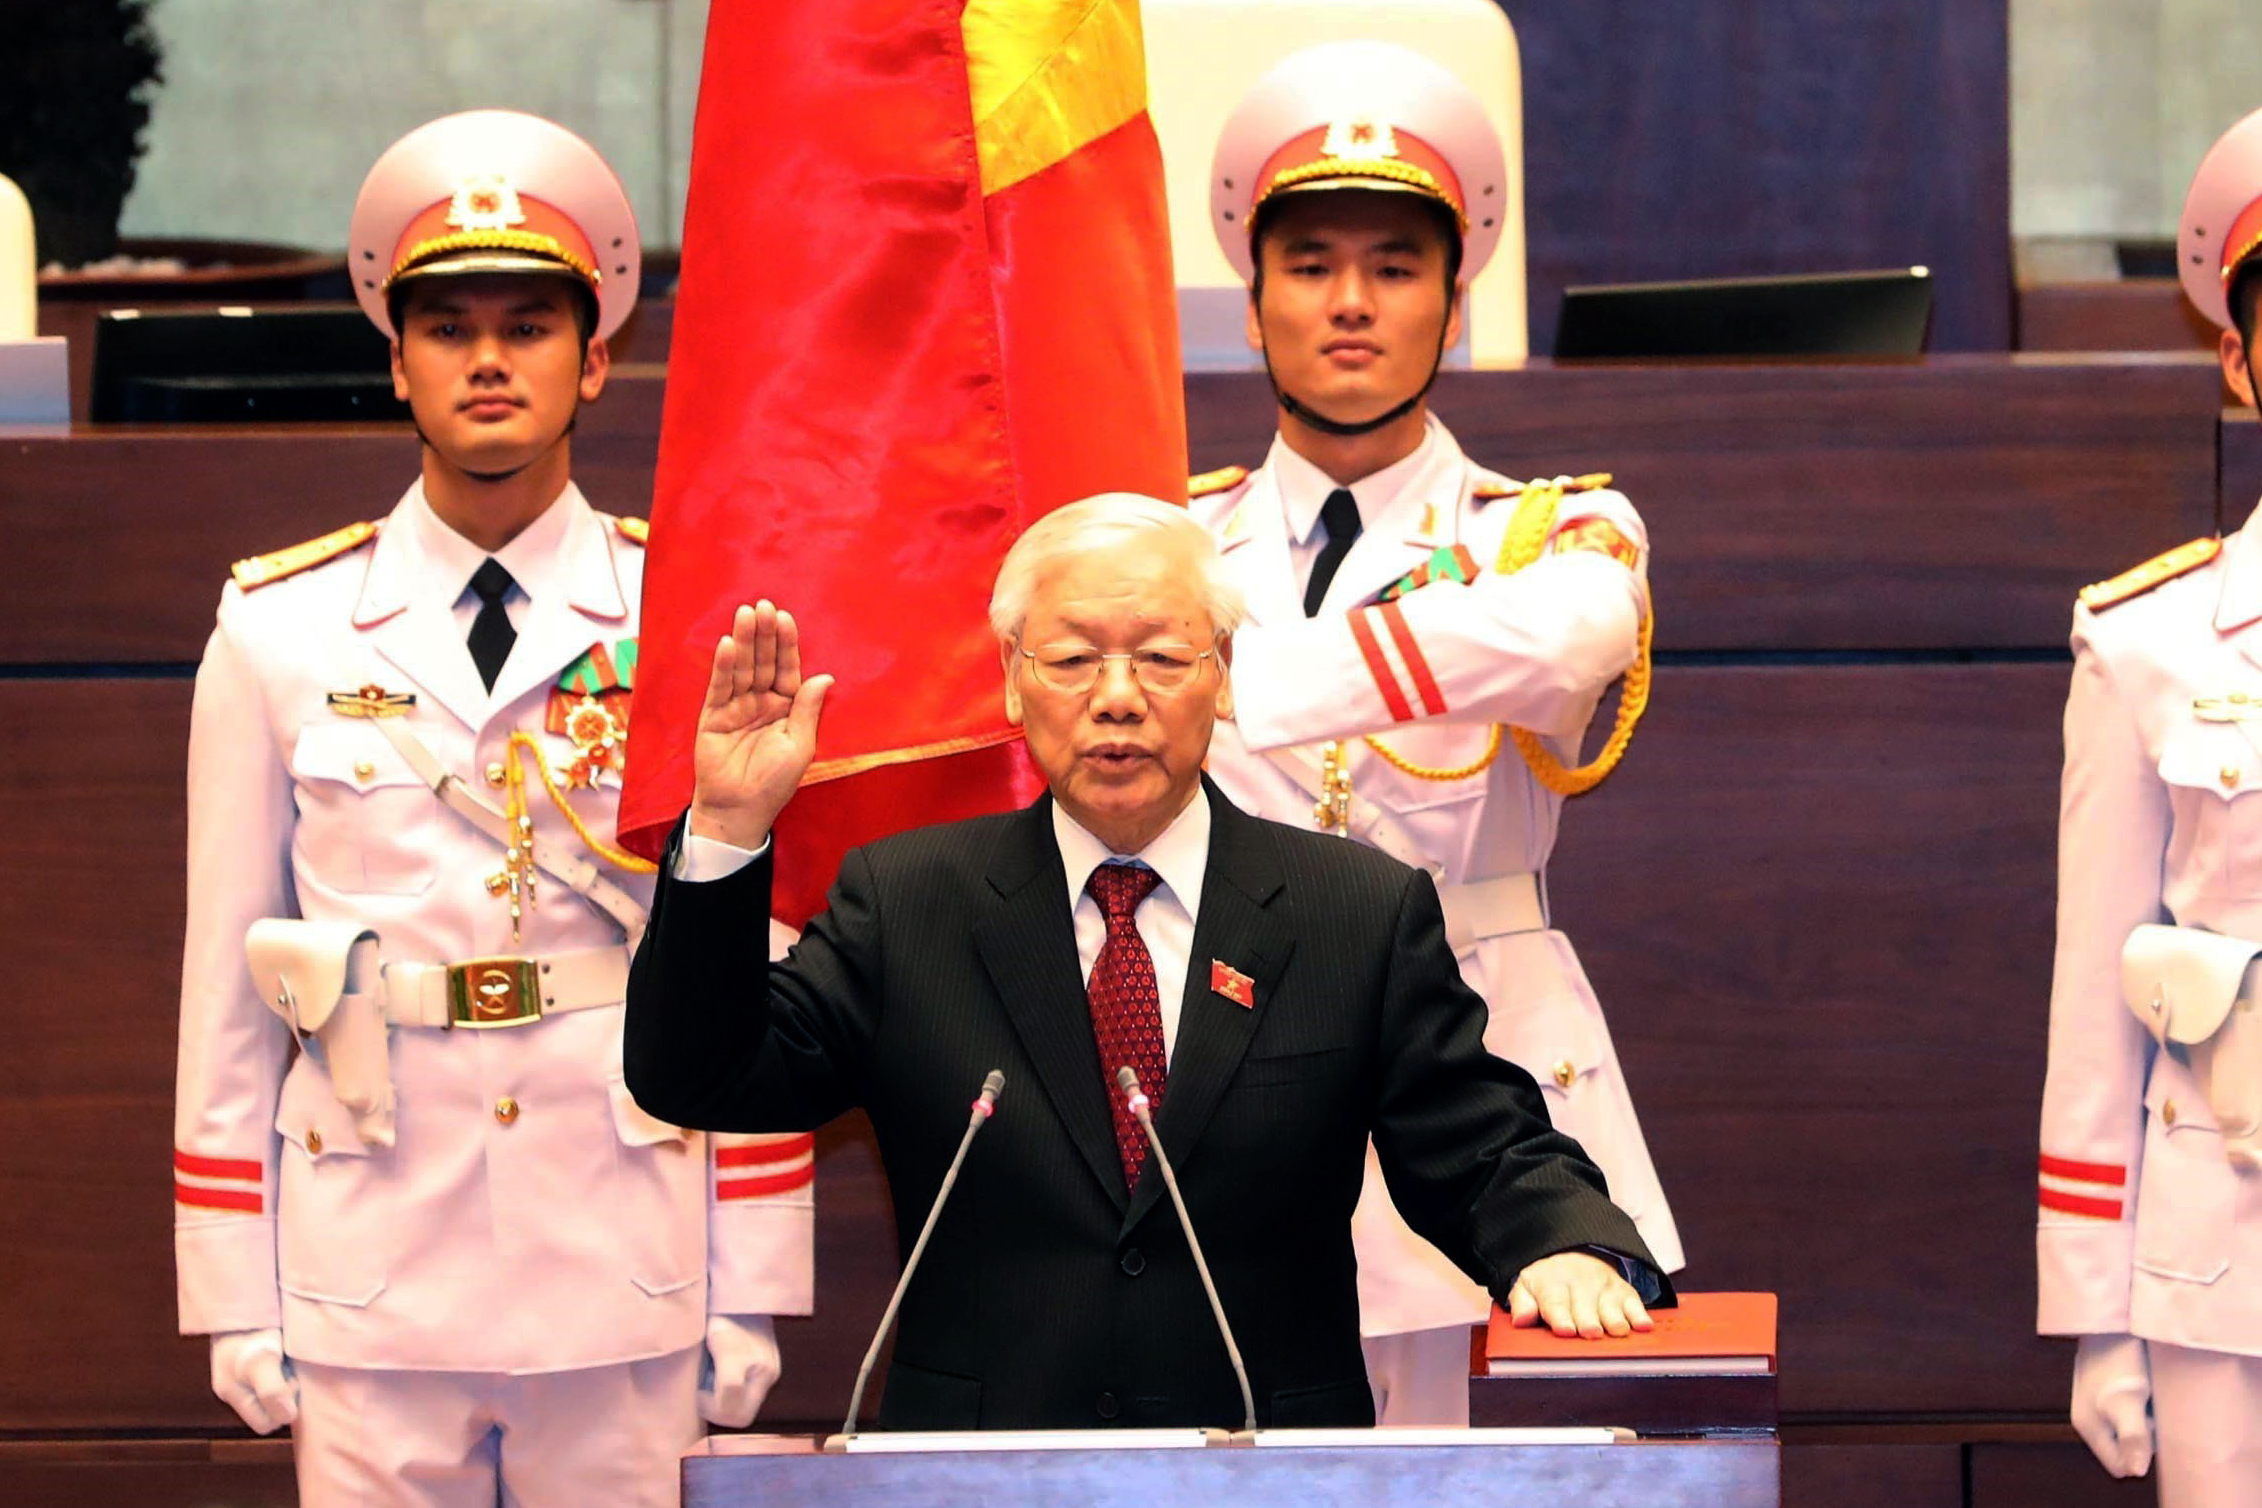 Vietnam communist party chief Nguyen Phu Trong takes oath as country's president at the National Assembly hall in Hanoi on October 23, 2018.